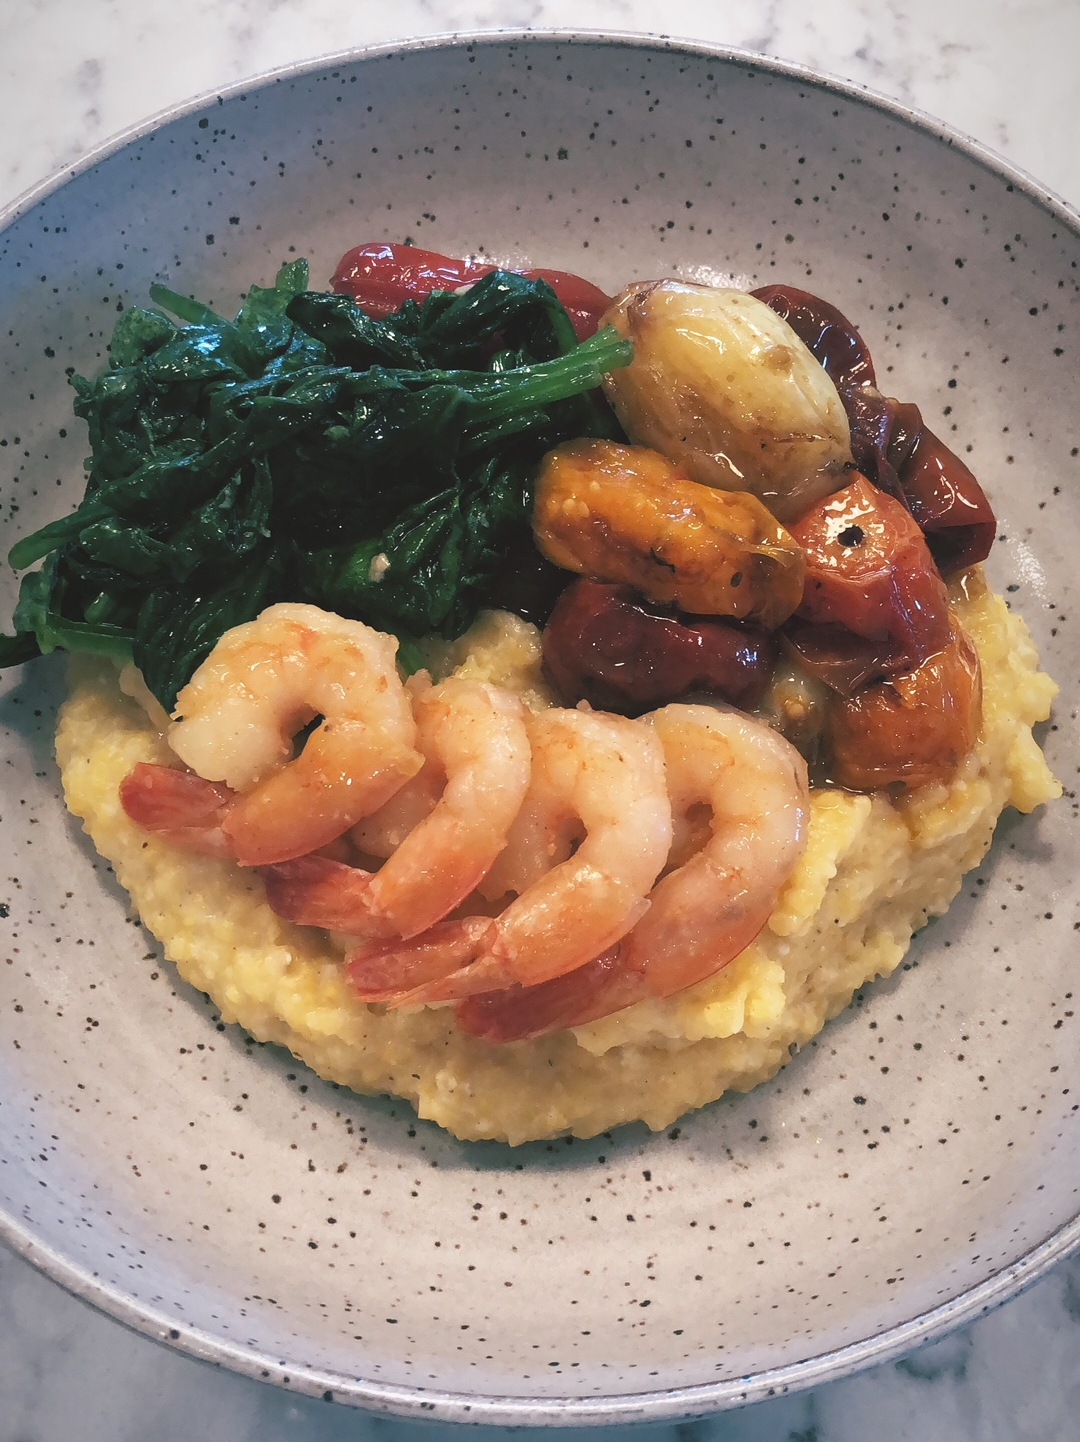 Shrimp and Grits with Slow Roasted Tomatoes and Spinach